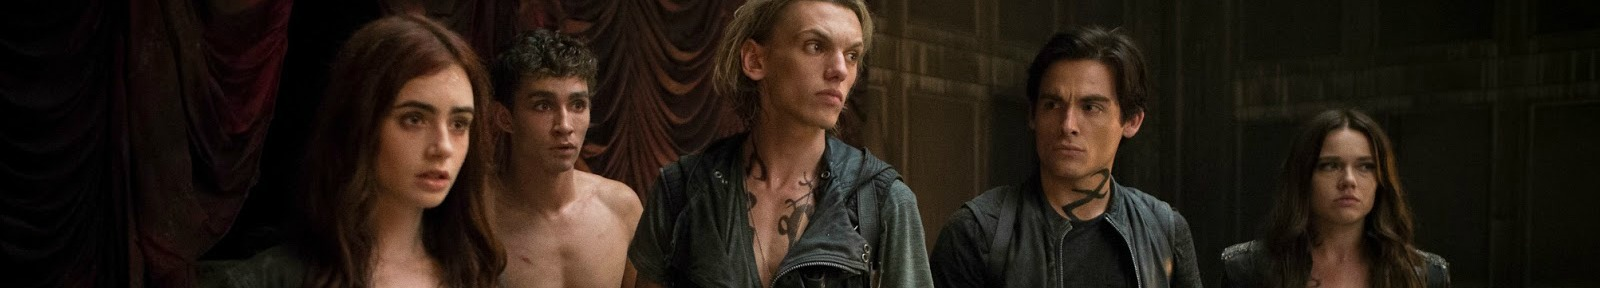 The Mortal Instruments (2010) Film Still